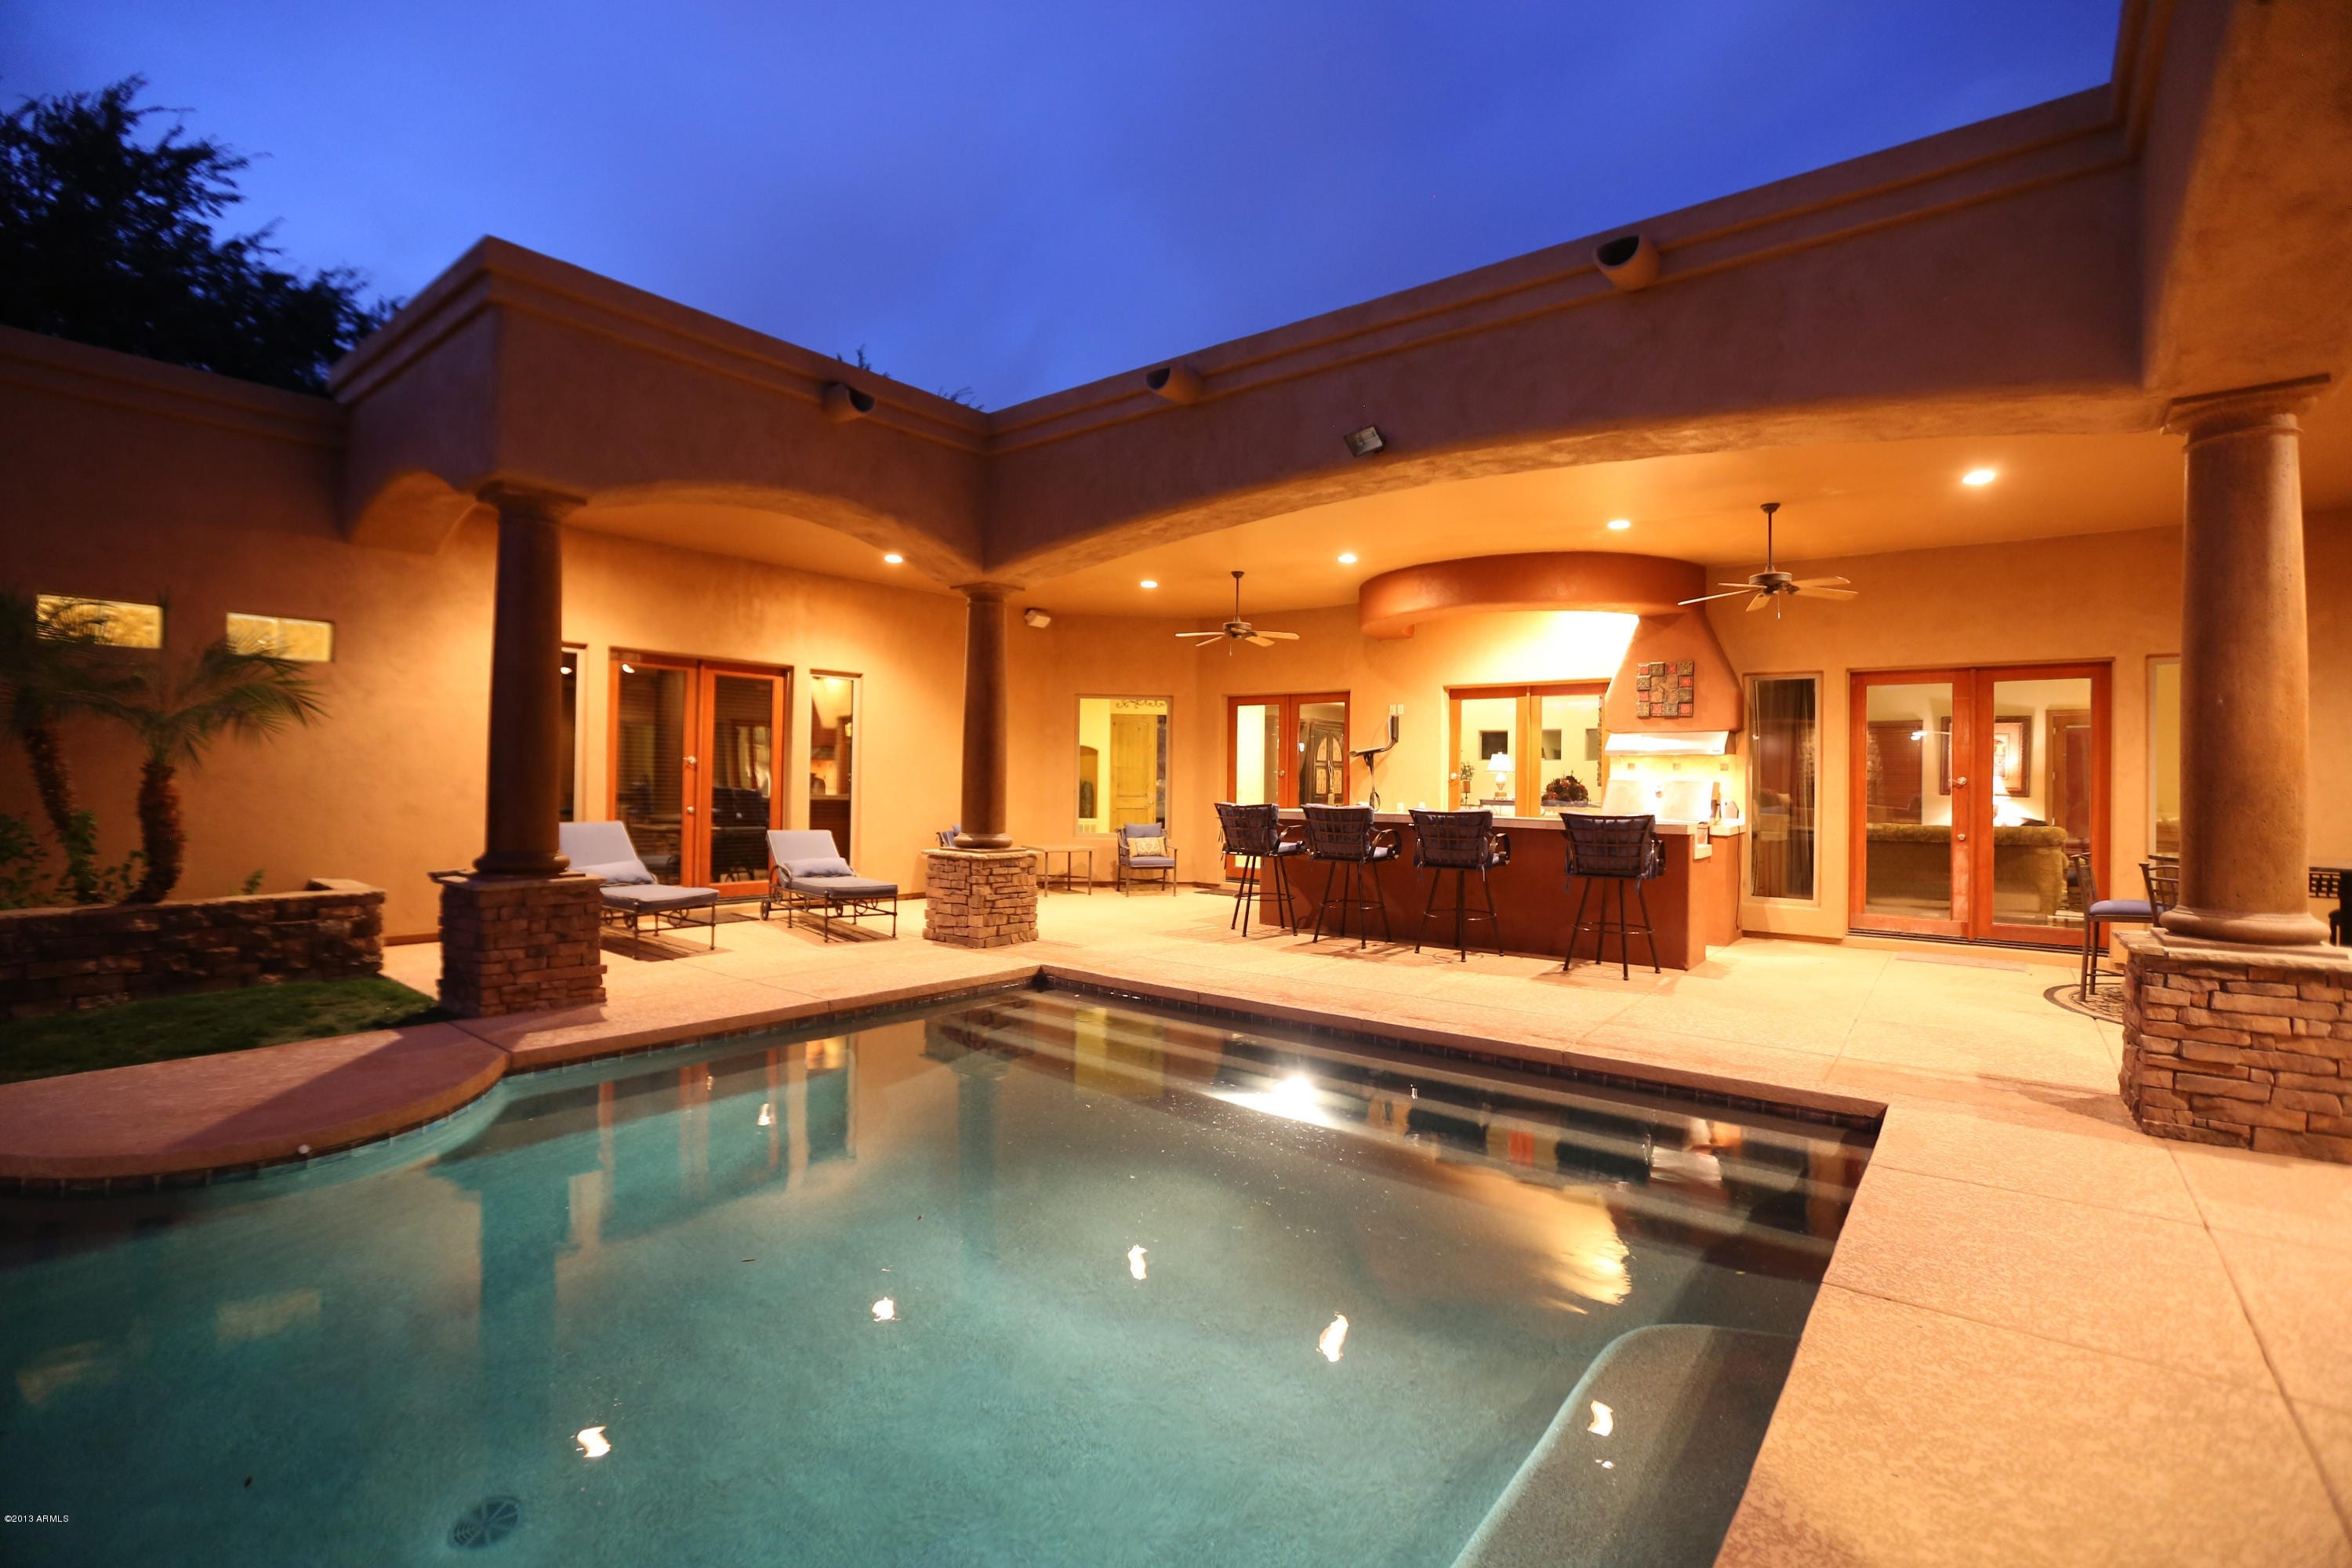 Houses for sale in scottsdale arizona scottsdale real for Houses for sale